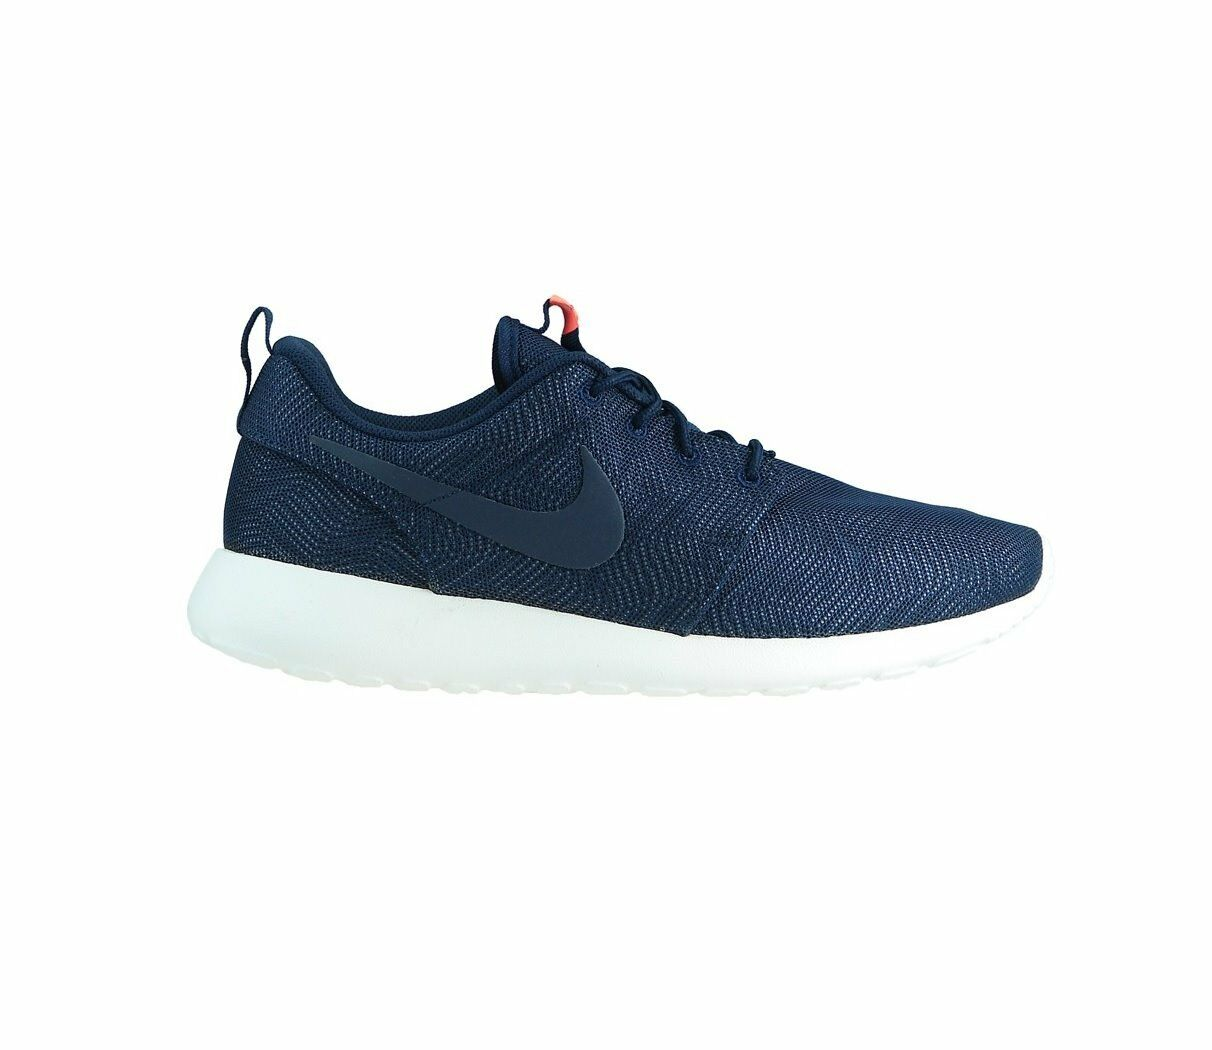 the latest 6534a d6bf3 Nike Roshe One Femmes Taille Taille Taille 4 4.5 5.5 Obsidienne Blanc  Baskets Sport Chaussures a2df8e